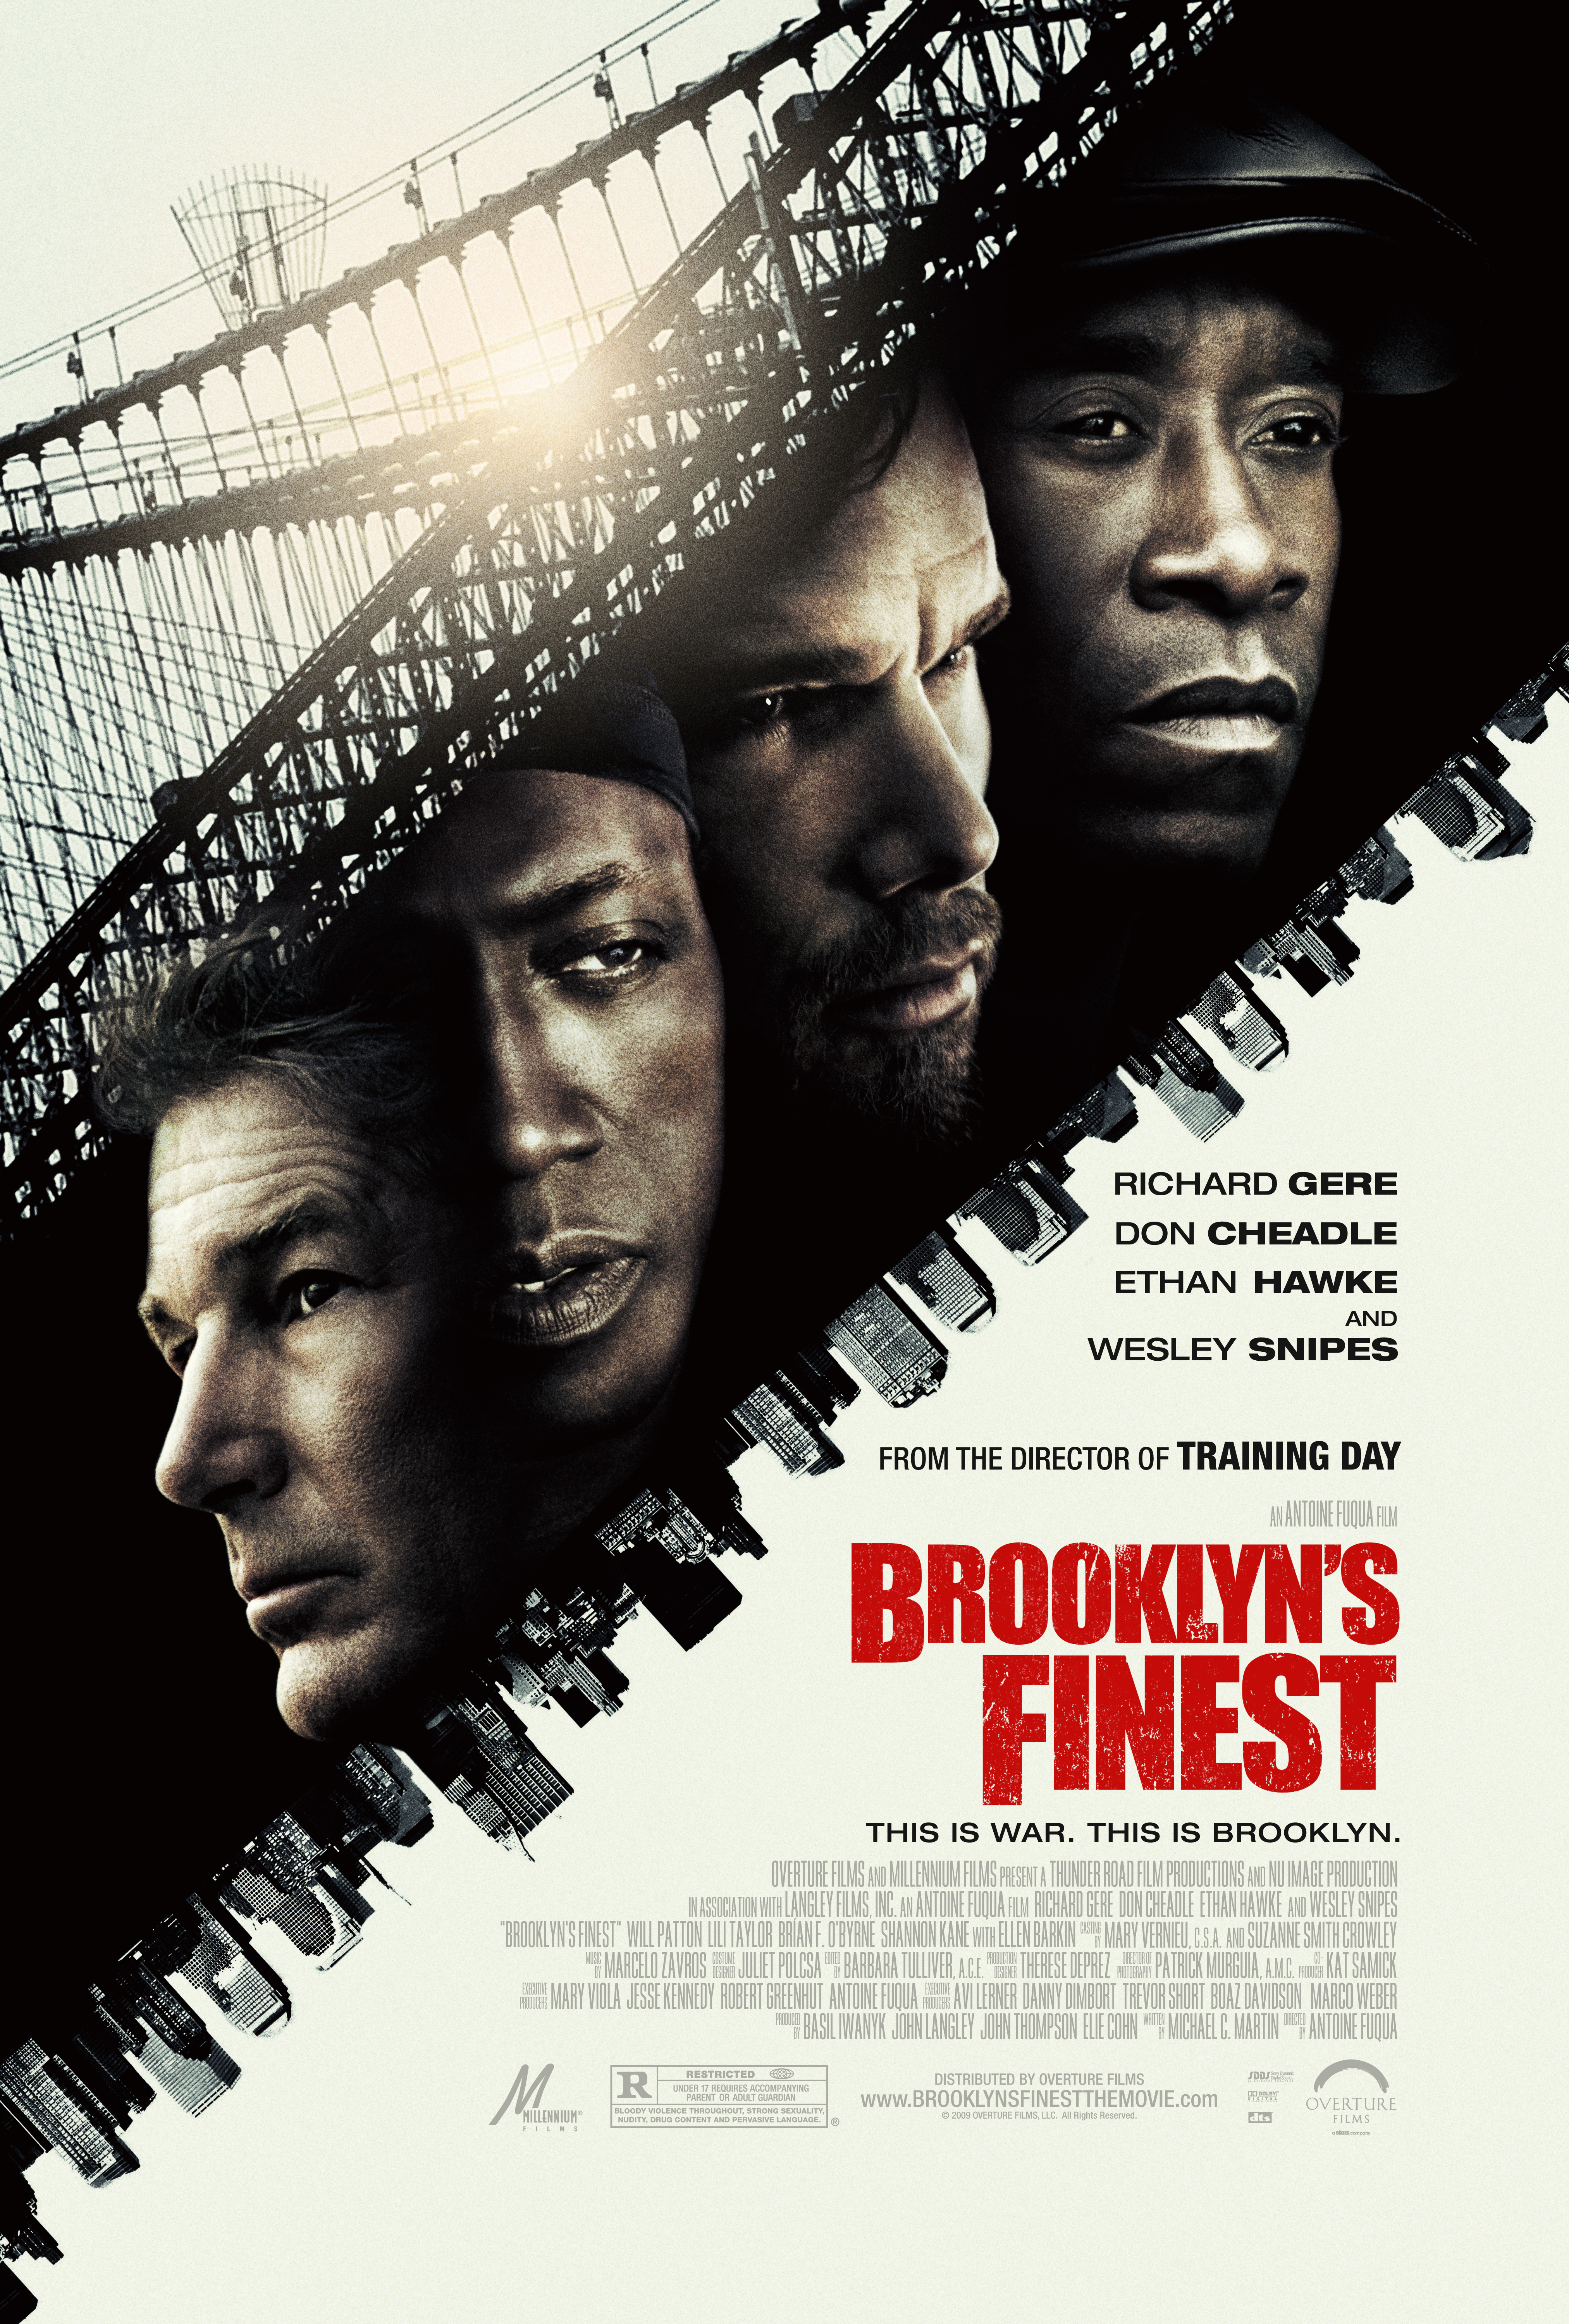 brooklyn_finest_poster.jpg